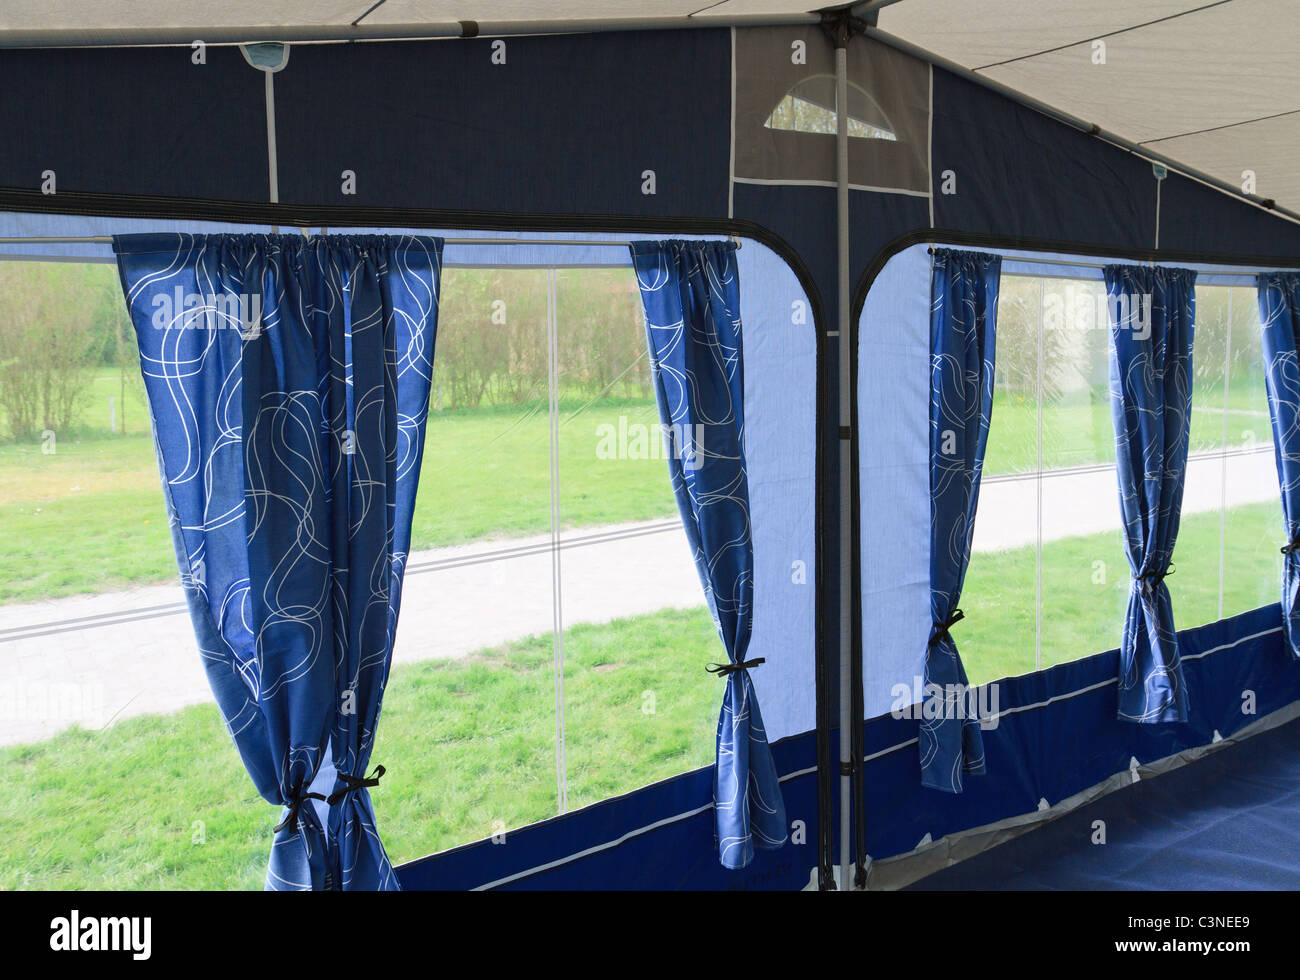 Inside Of Caravan Awning Tent With Blue Curtains And Four Windows